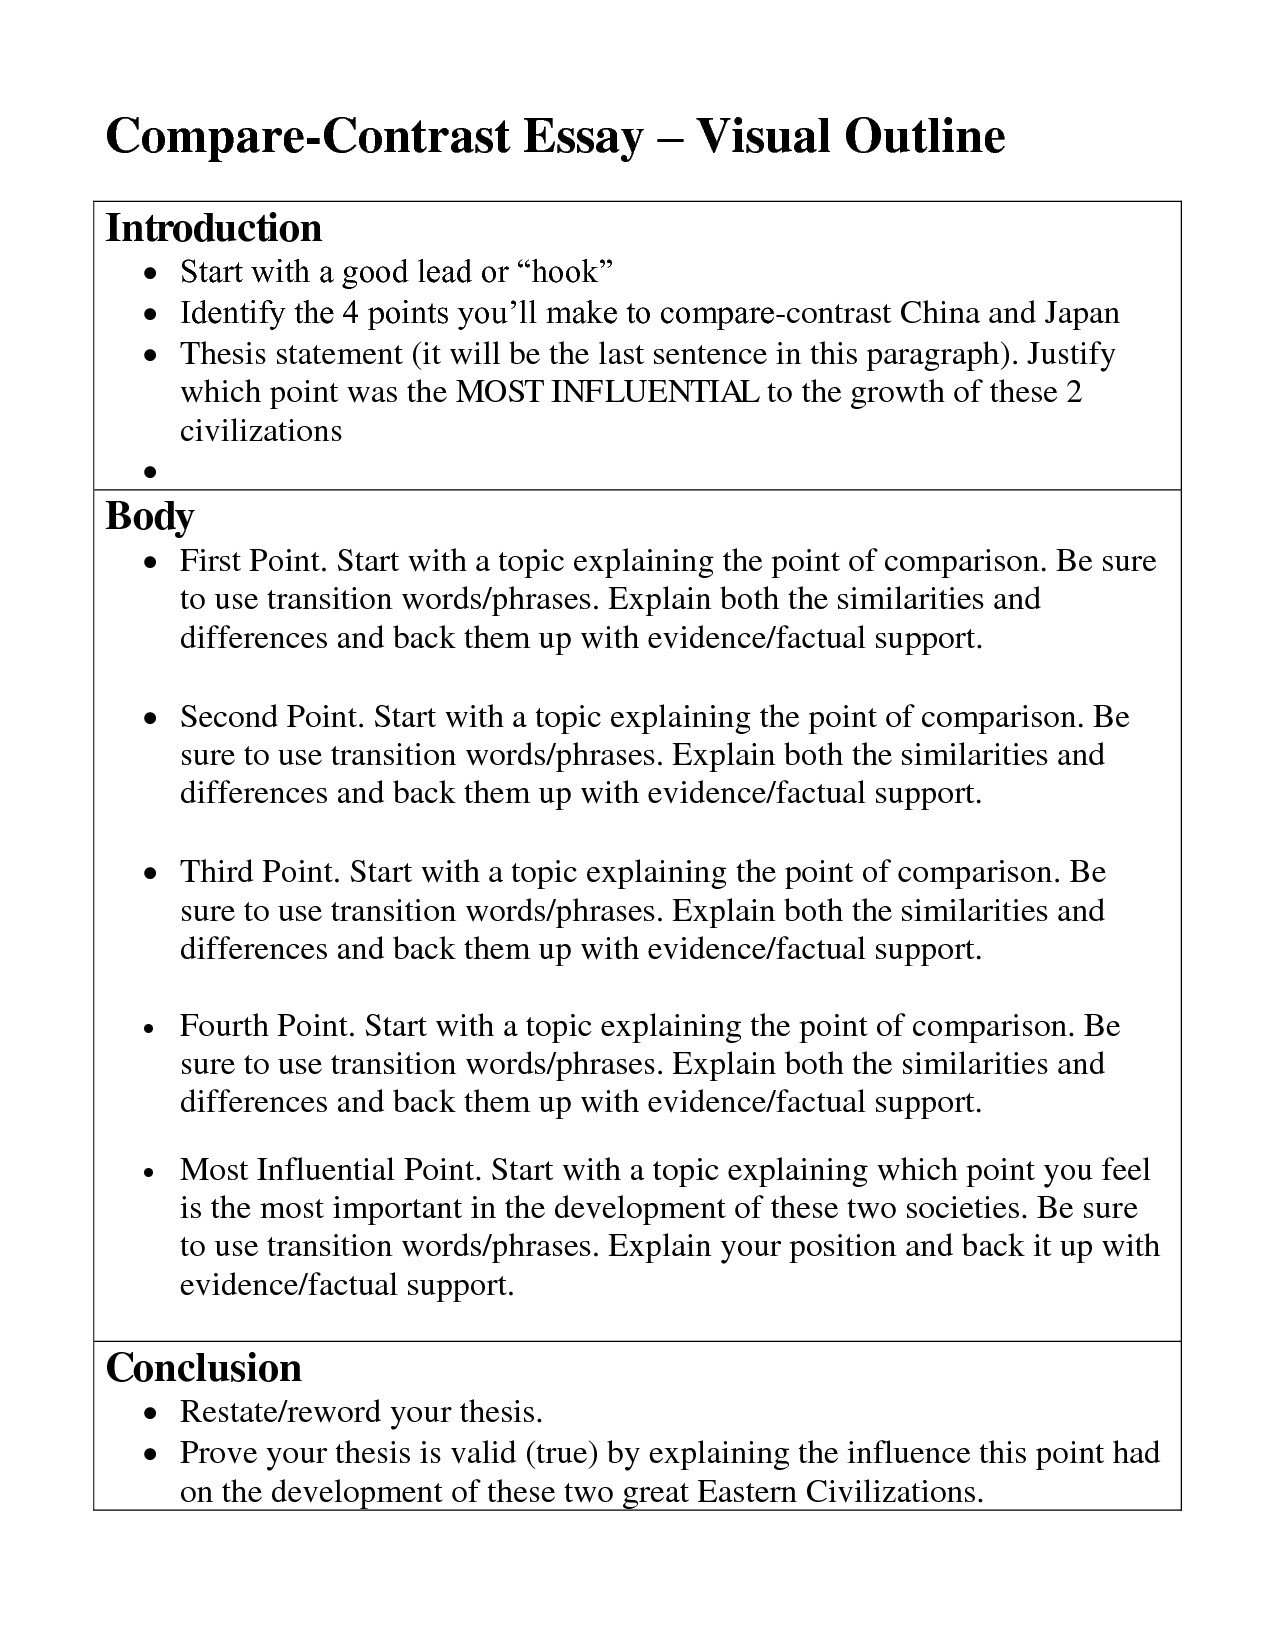 014 Good Hook For An Essay Writing Hooks Worksheet Refrence Laws Fresh How To Write Ess Argumentative Narrative The Best College Sentence Informative About Yourself Impressive A Odyssey Full